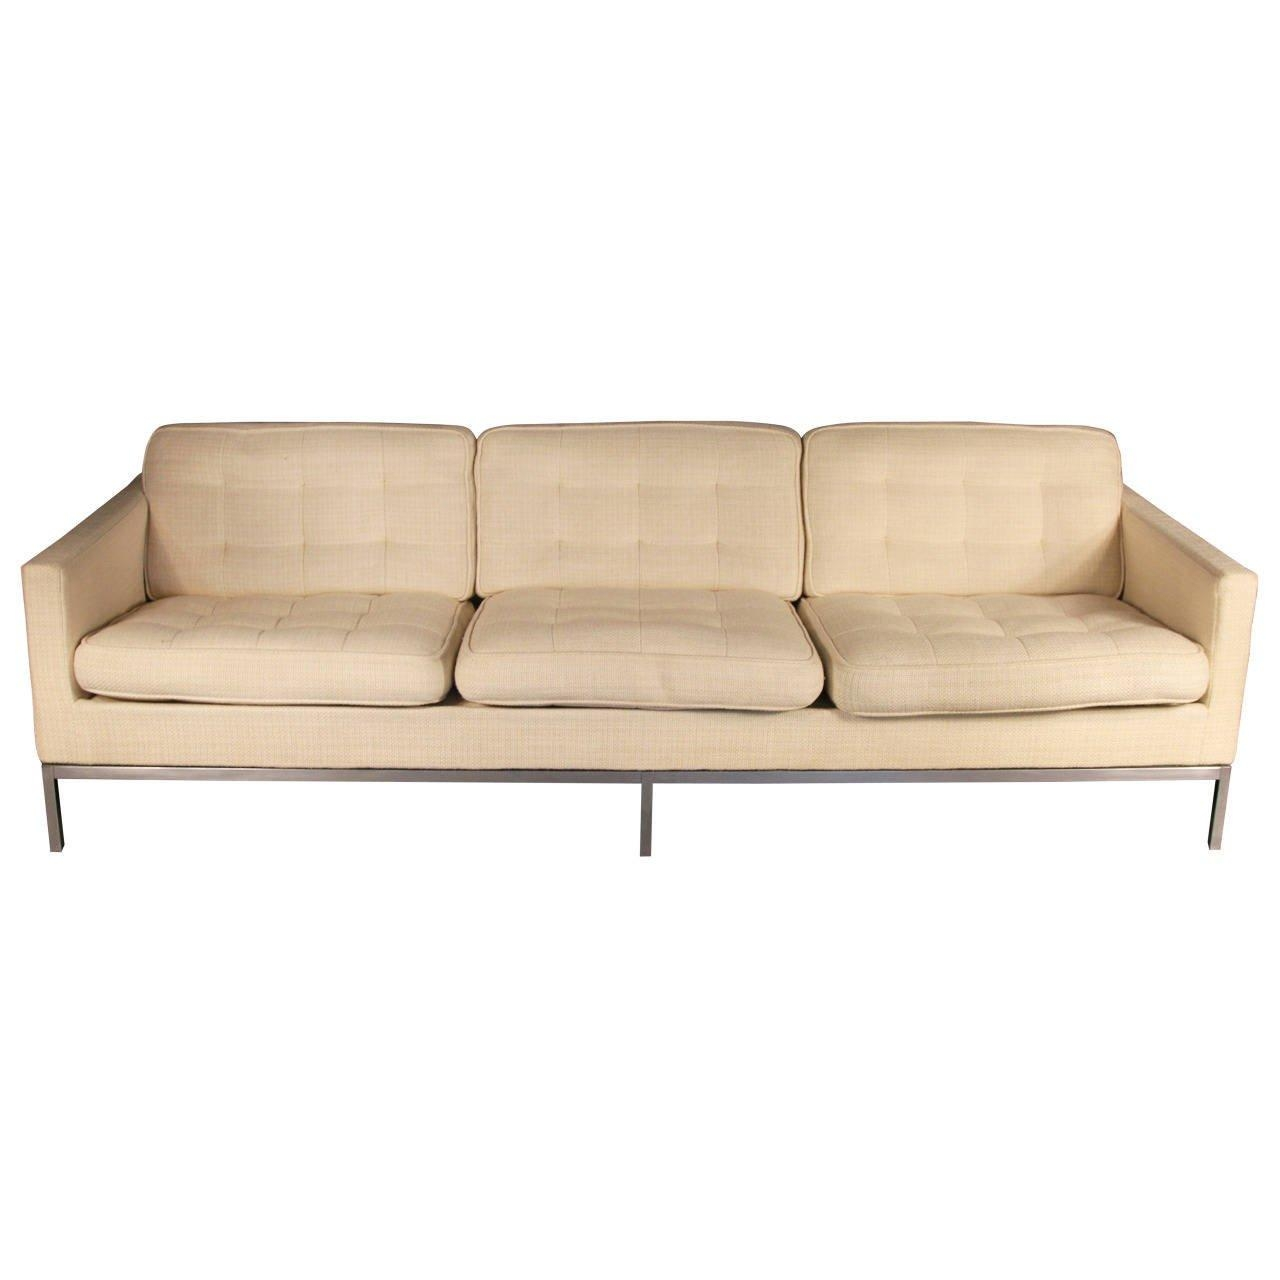 Florence Knoll Sofas – 54 For Sale At 1Stdibs In Knoll Sofas (View 20 of 20)